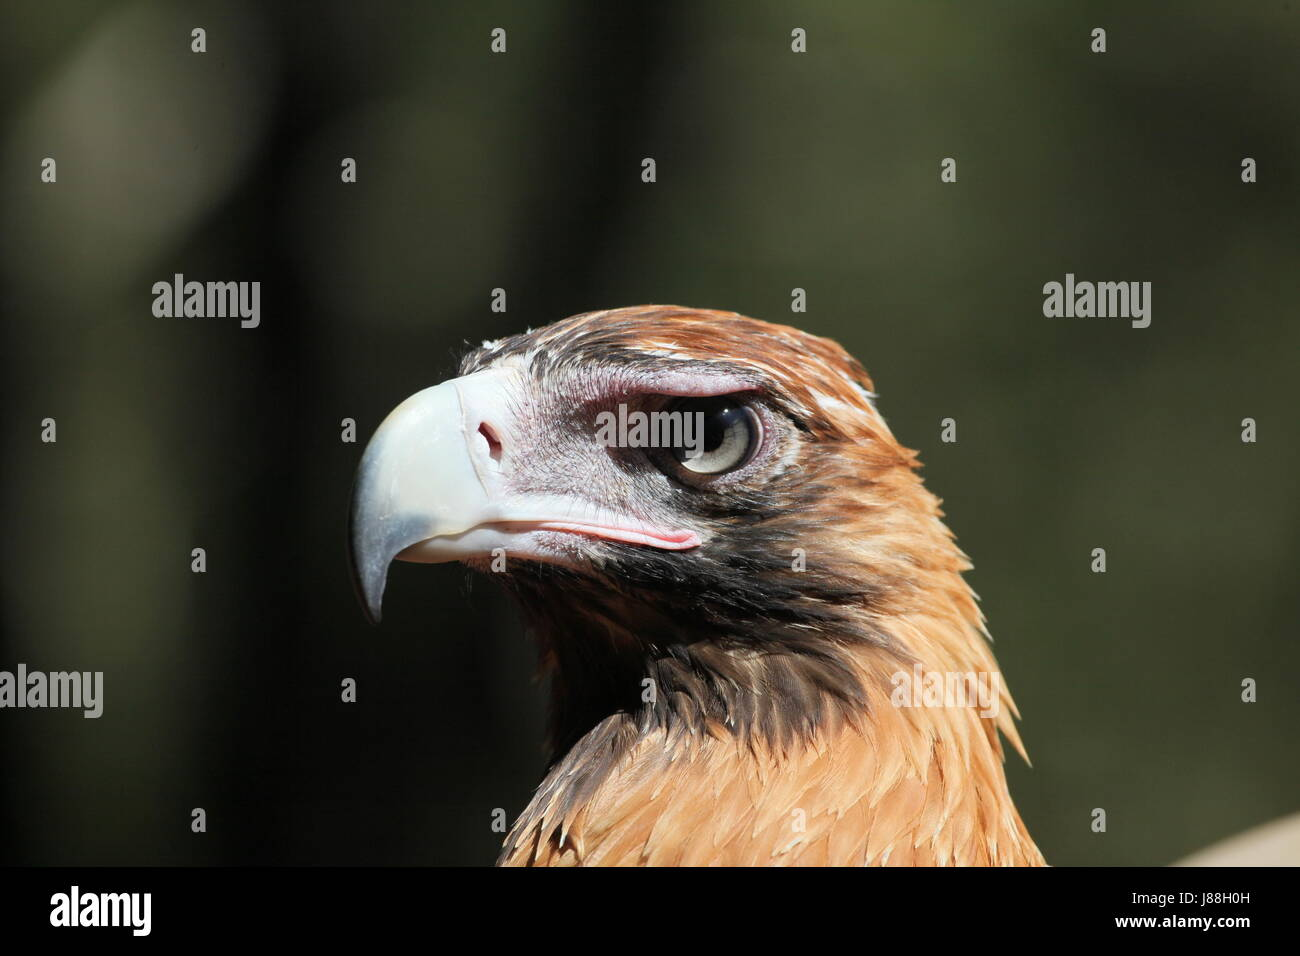 wedge, eagle, berry, portrait, keilschwanzadler, tailed, australien, Stock Photo